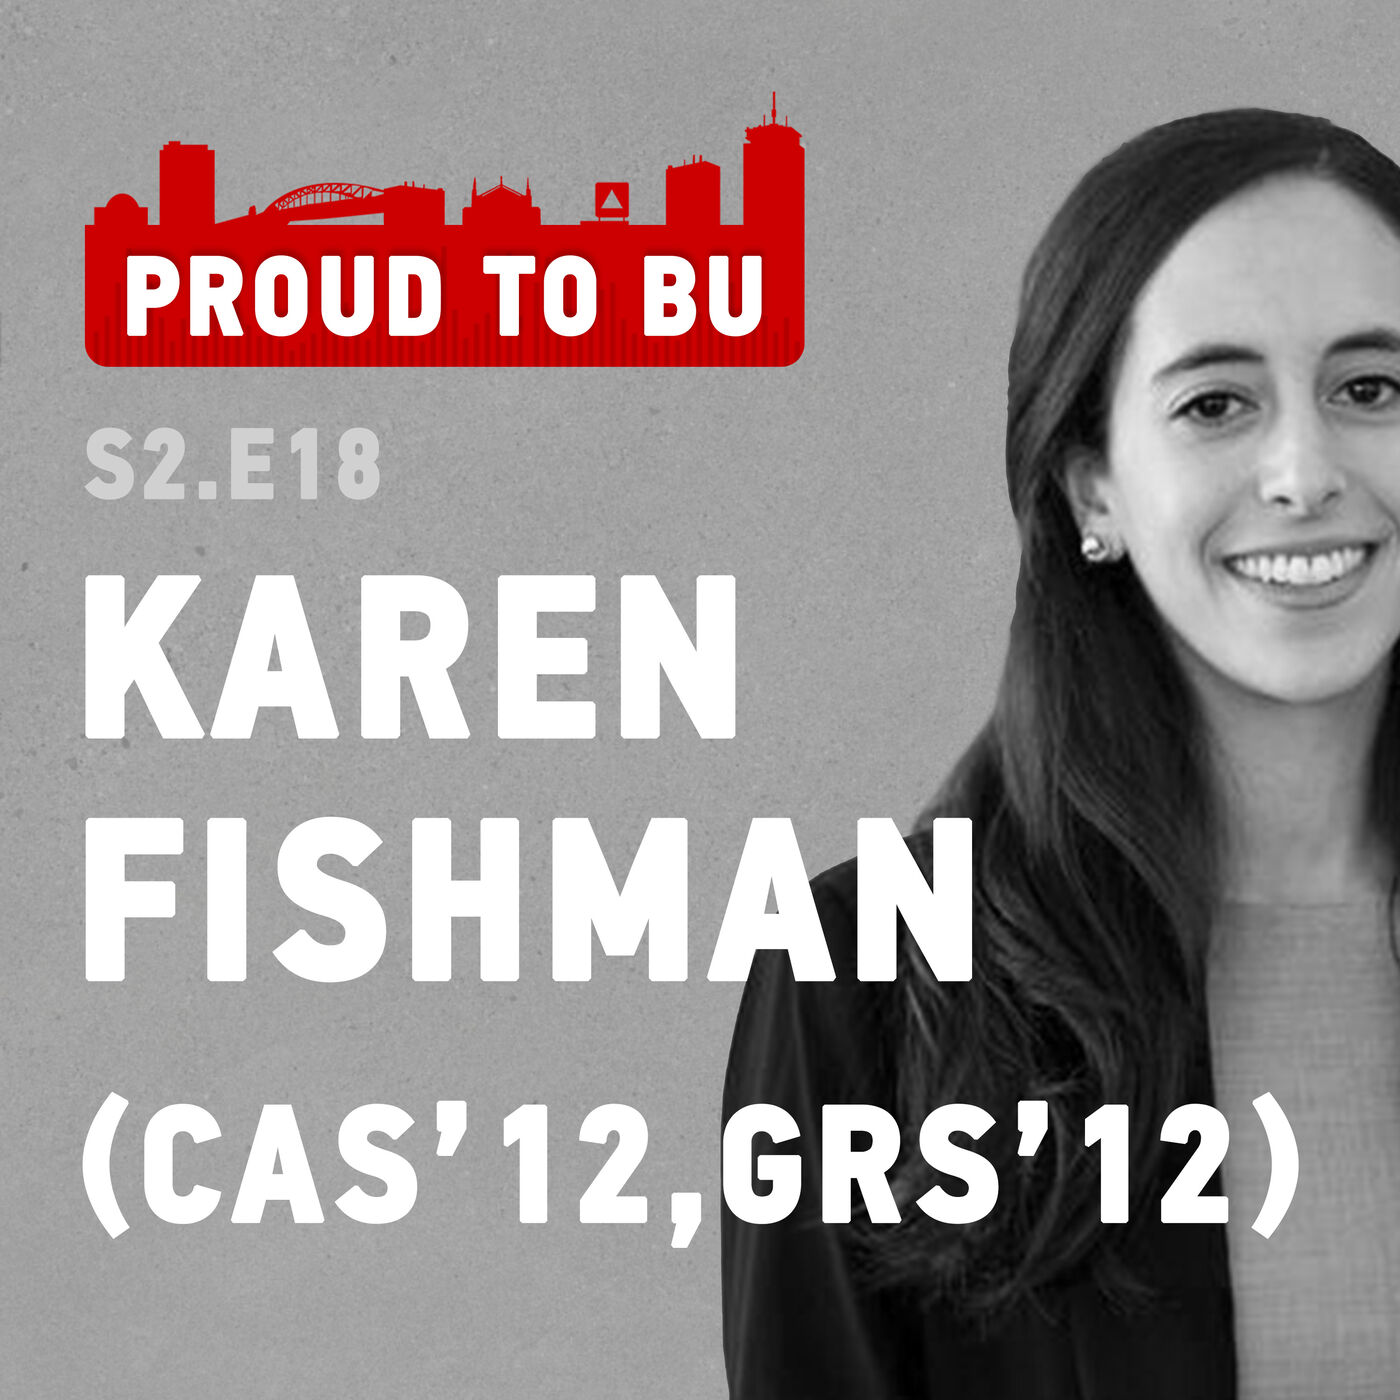 S2 E18: Forbes' 30 Under 30 Economist on Asking Big Questions